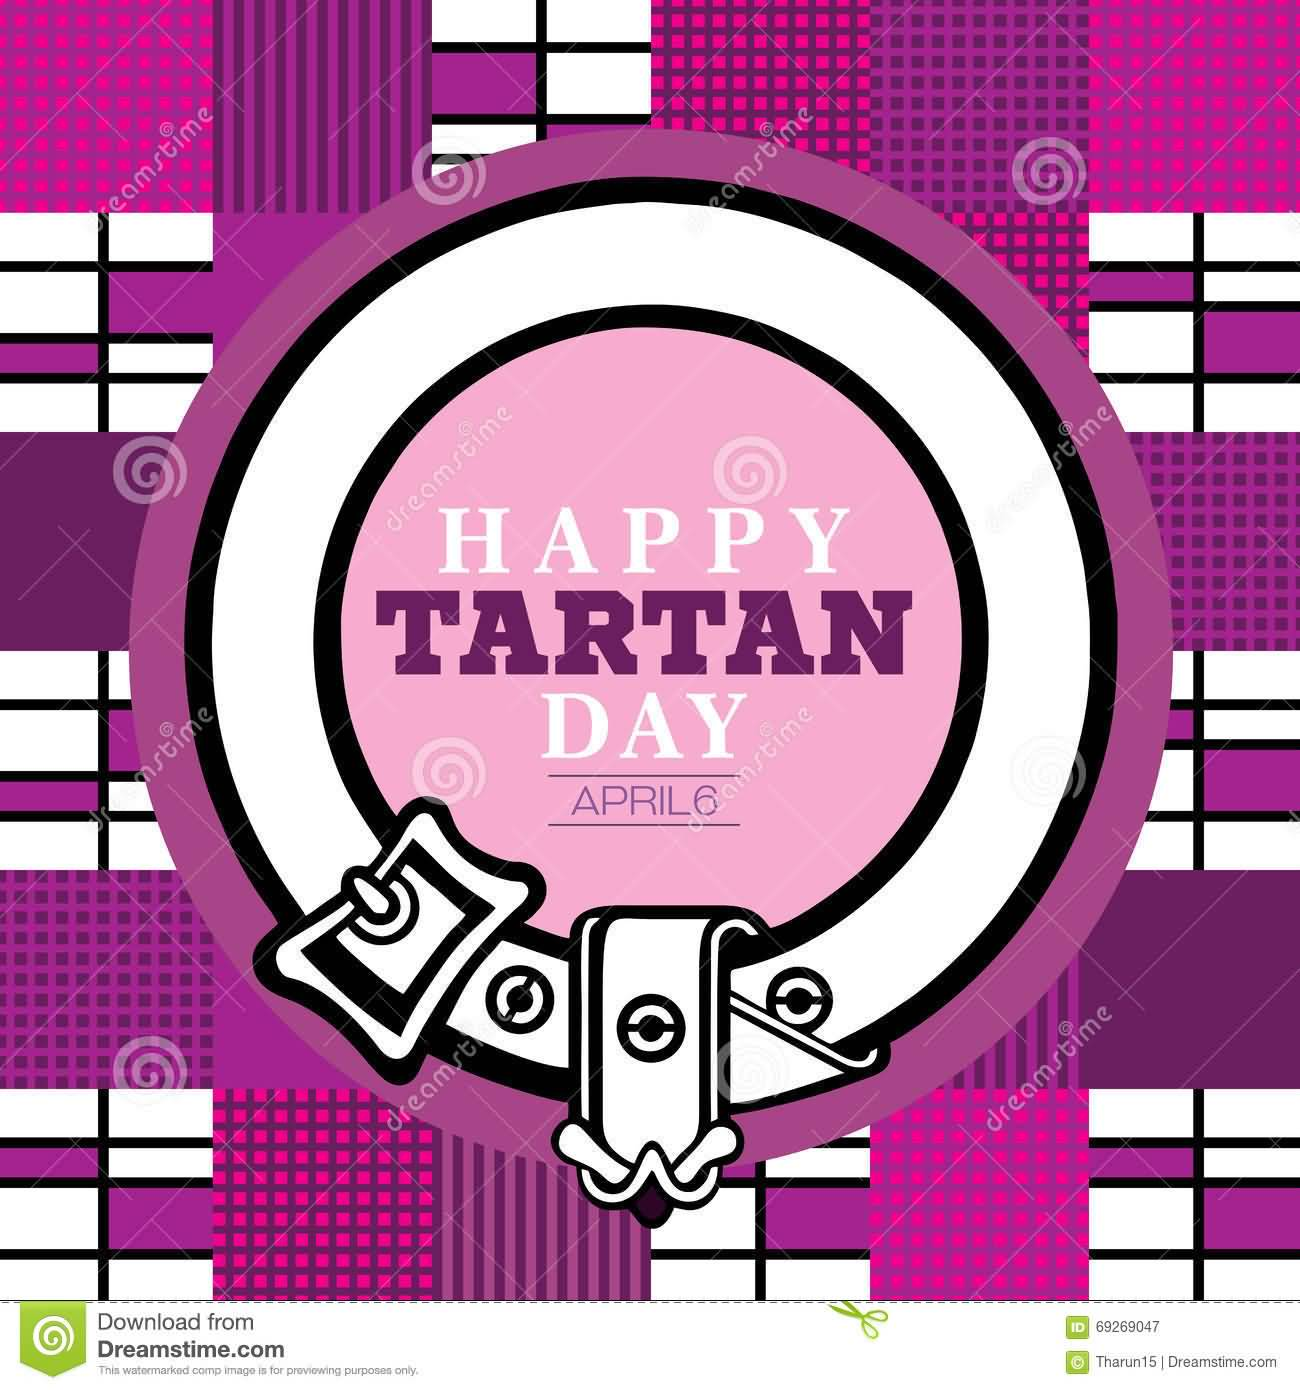 1-Happy Tartan Day Wishes